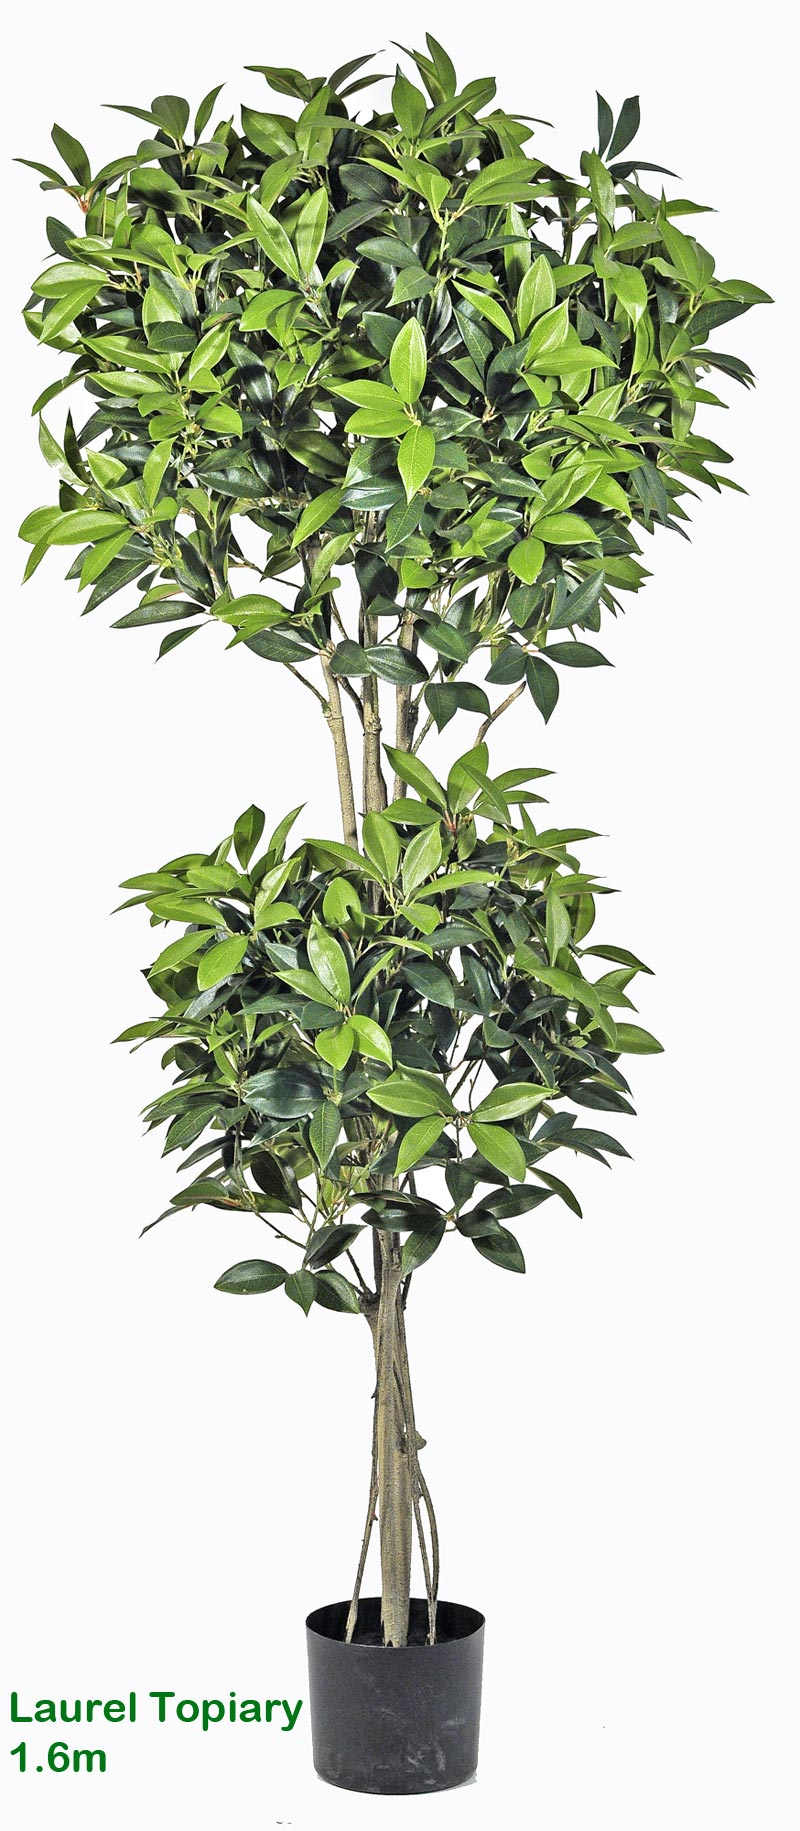 Articial Plants - Laurel Topiary 1.6m